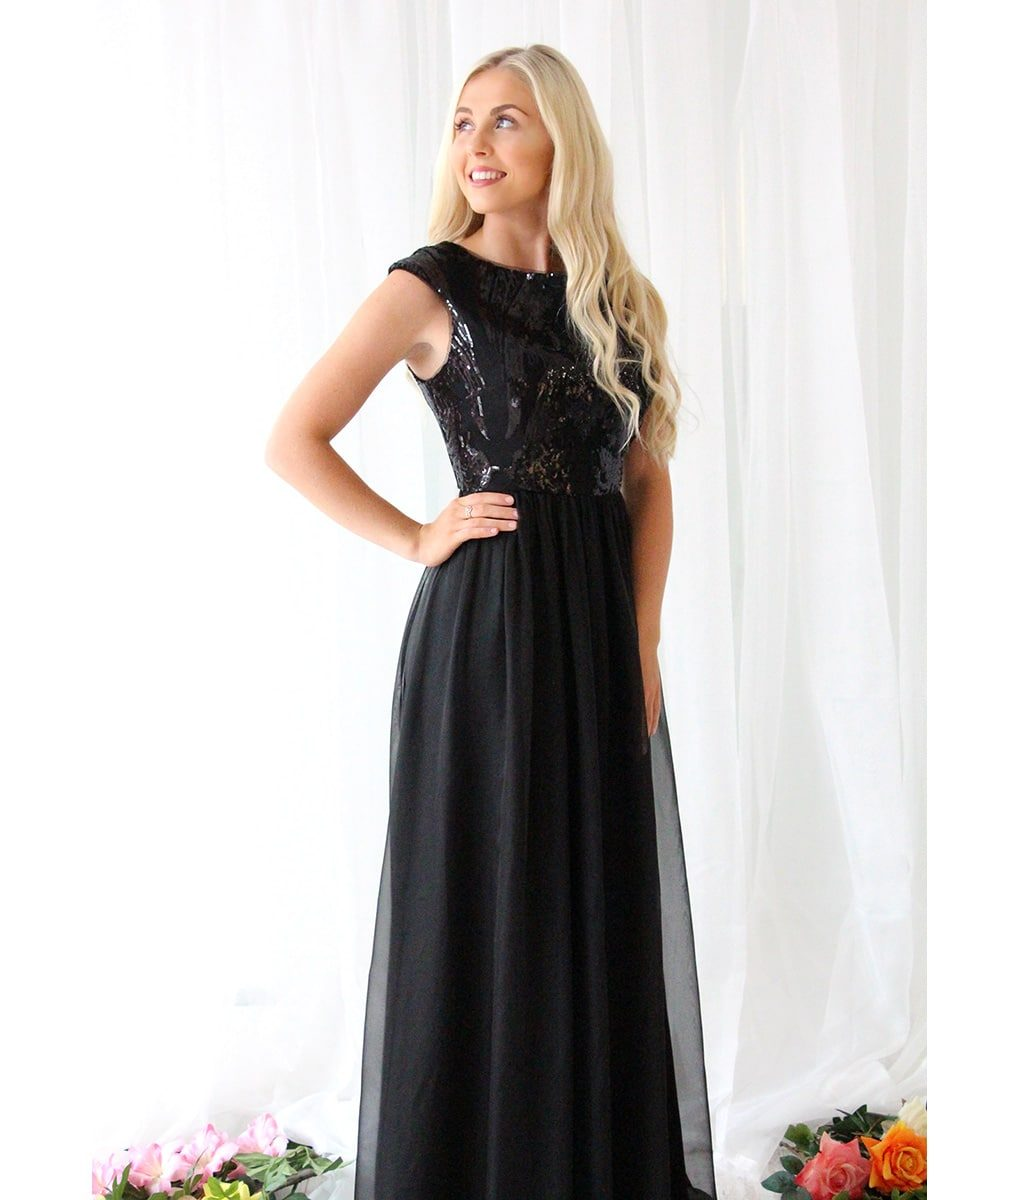 Alila-Black-Sequin-Chiffon-Long-Evening-Dress-Bariano